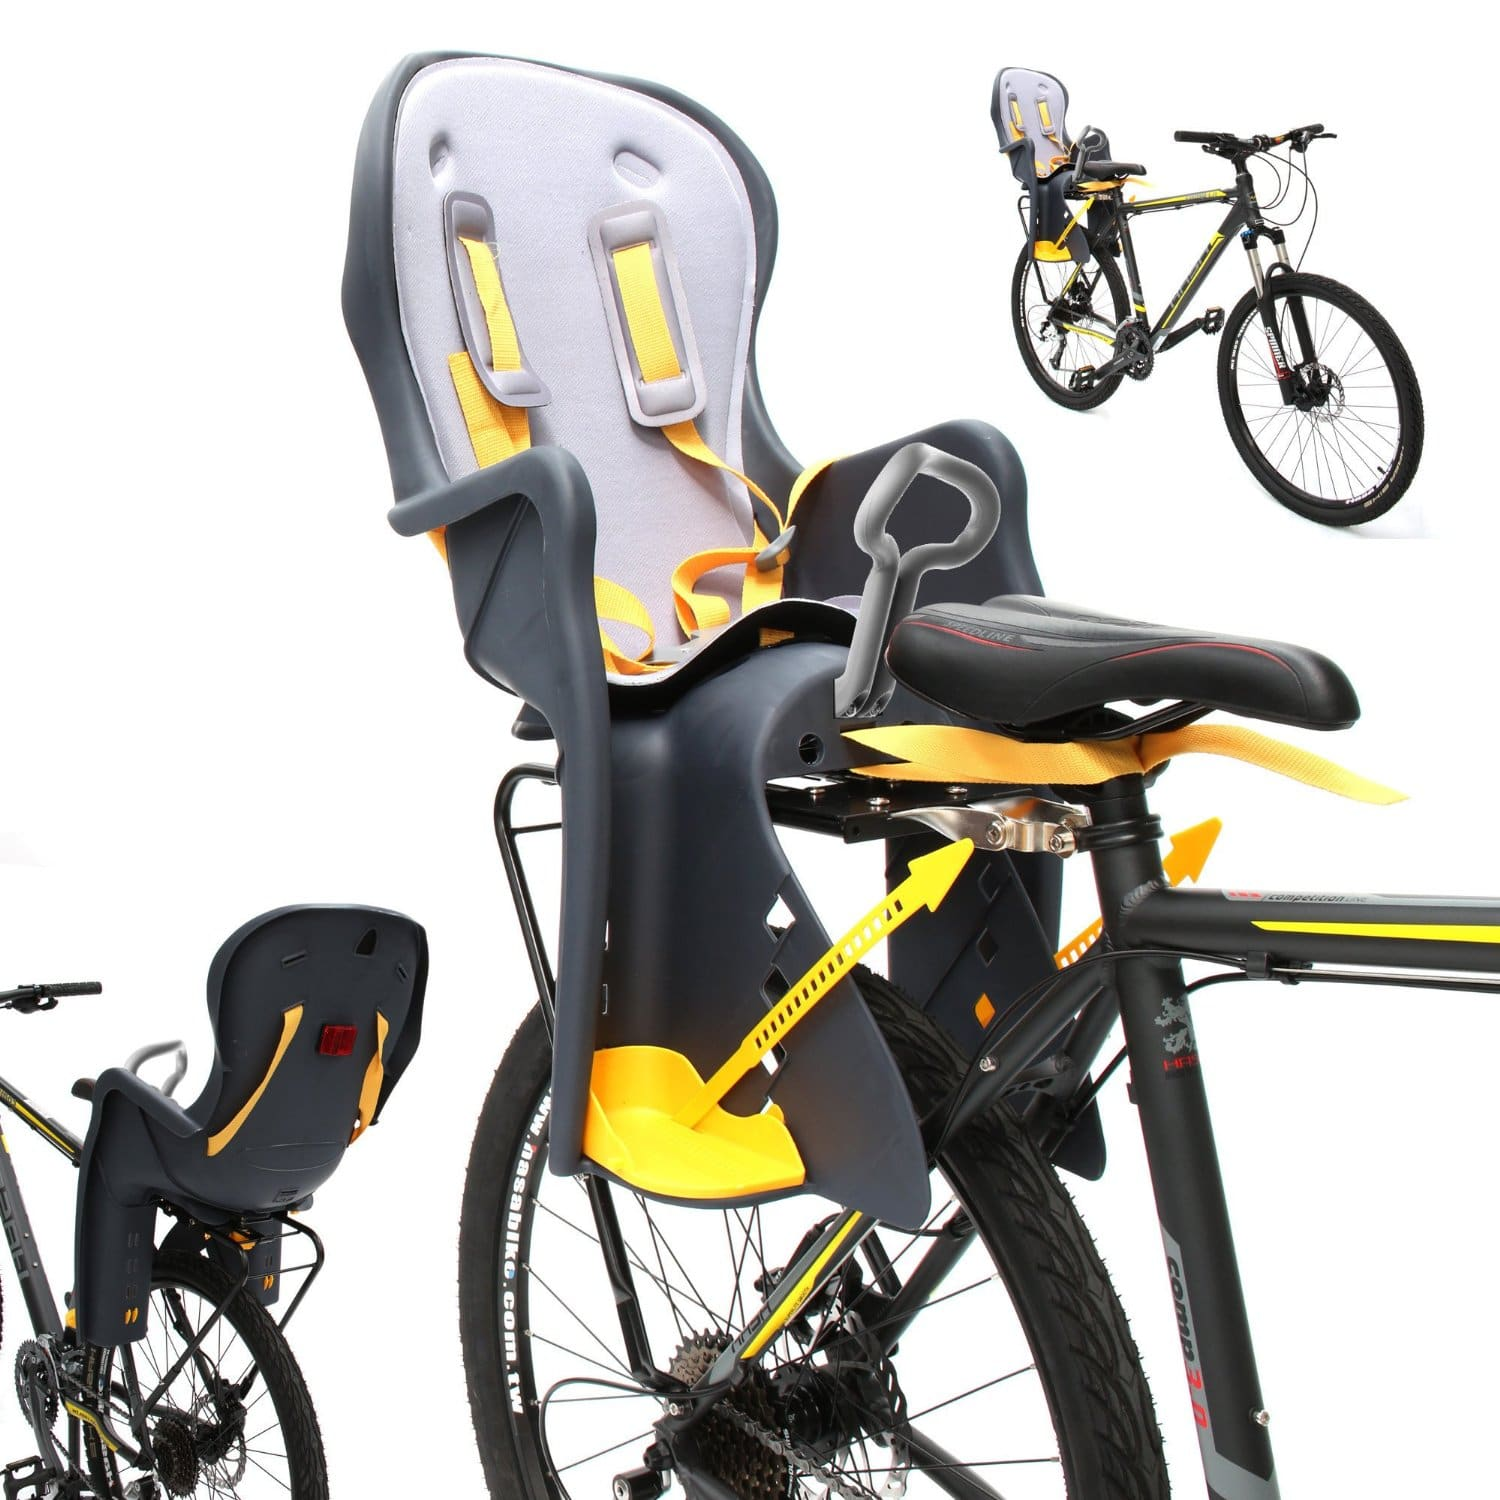 Top 10 Best Baby Bicycle Seats in 2018 Review